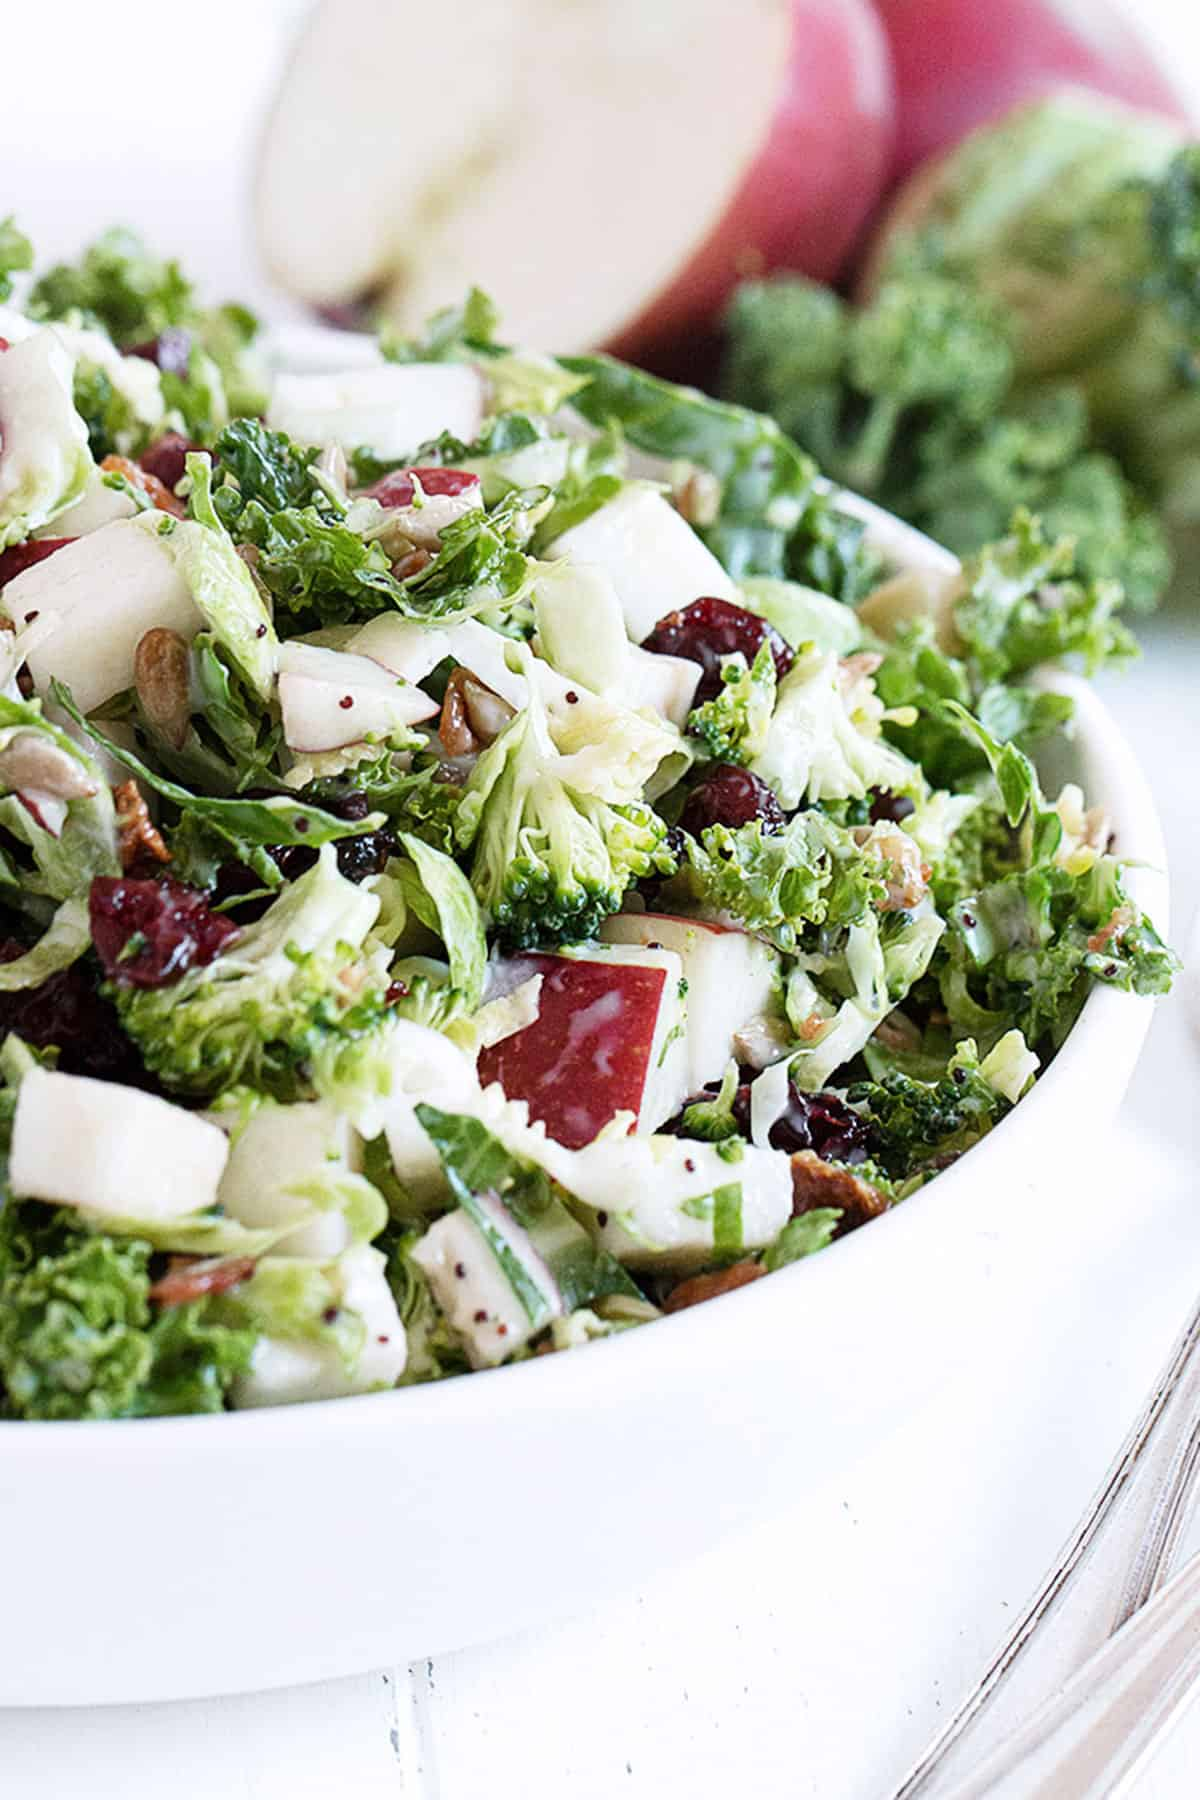 Fall kale salad with apple in white bowl